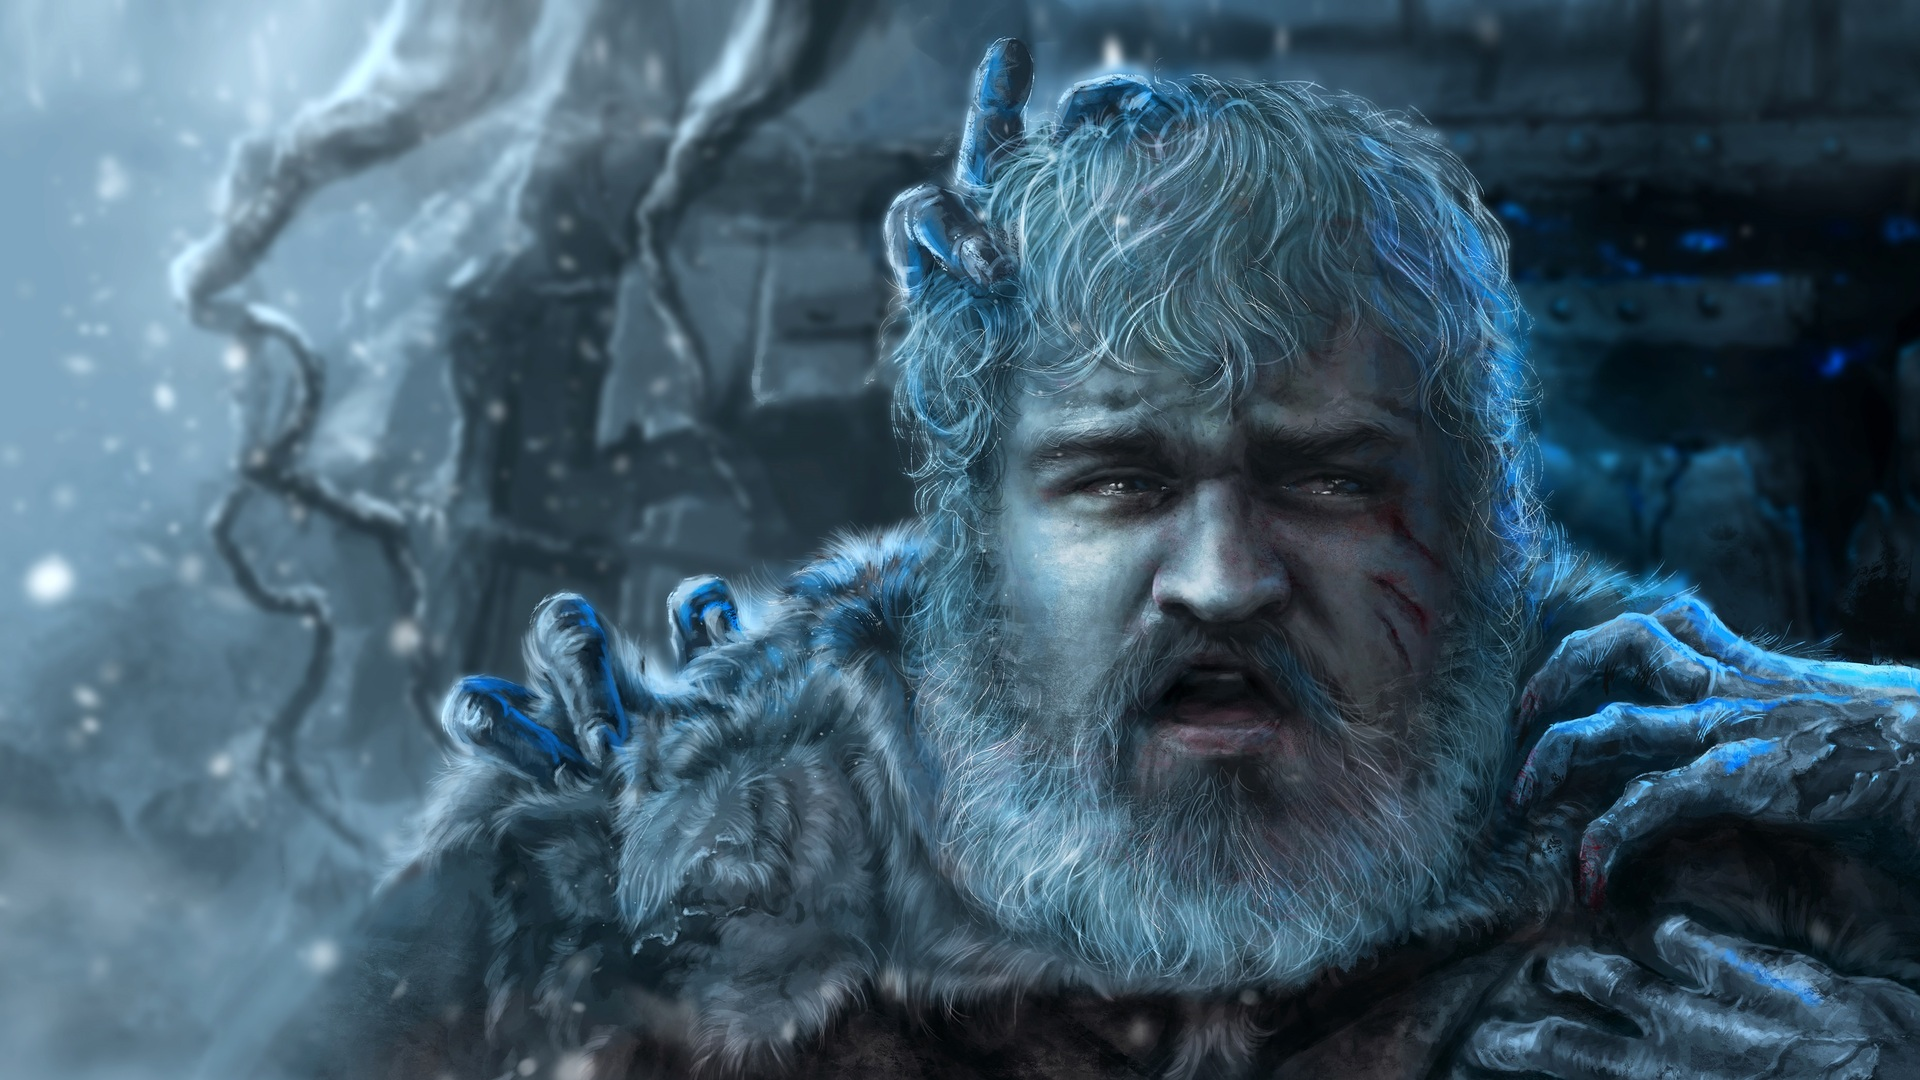 1920x1080 hodor game of thrones art laptop full hd 1080p hd 4k wallpapers images backgrounds. Black Bedroom Furniture Sets. Home Design Ideas